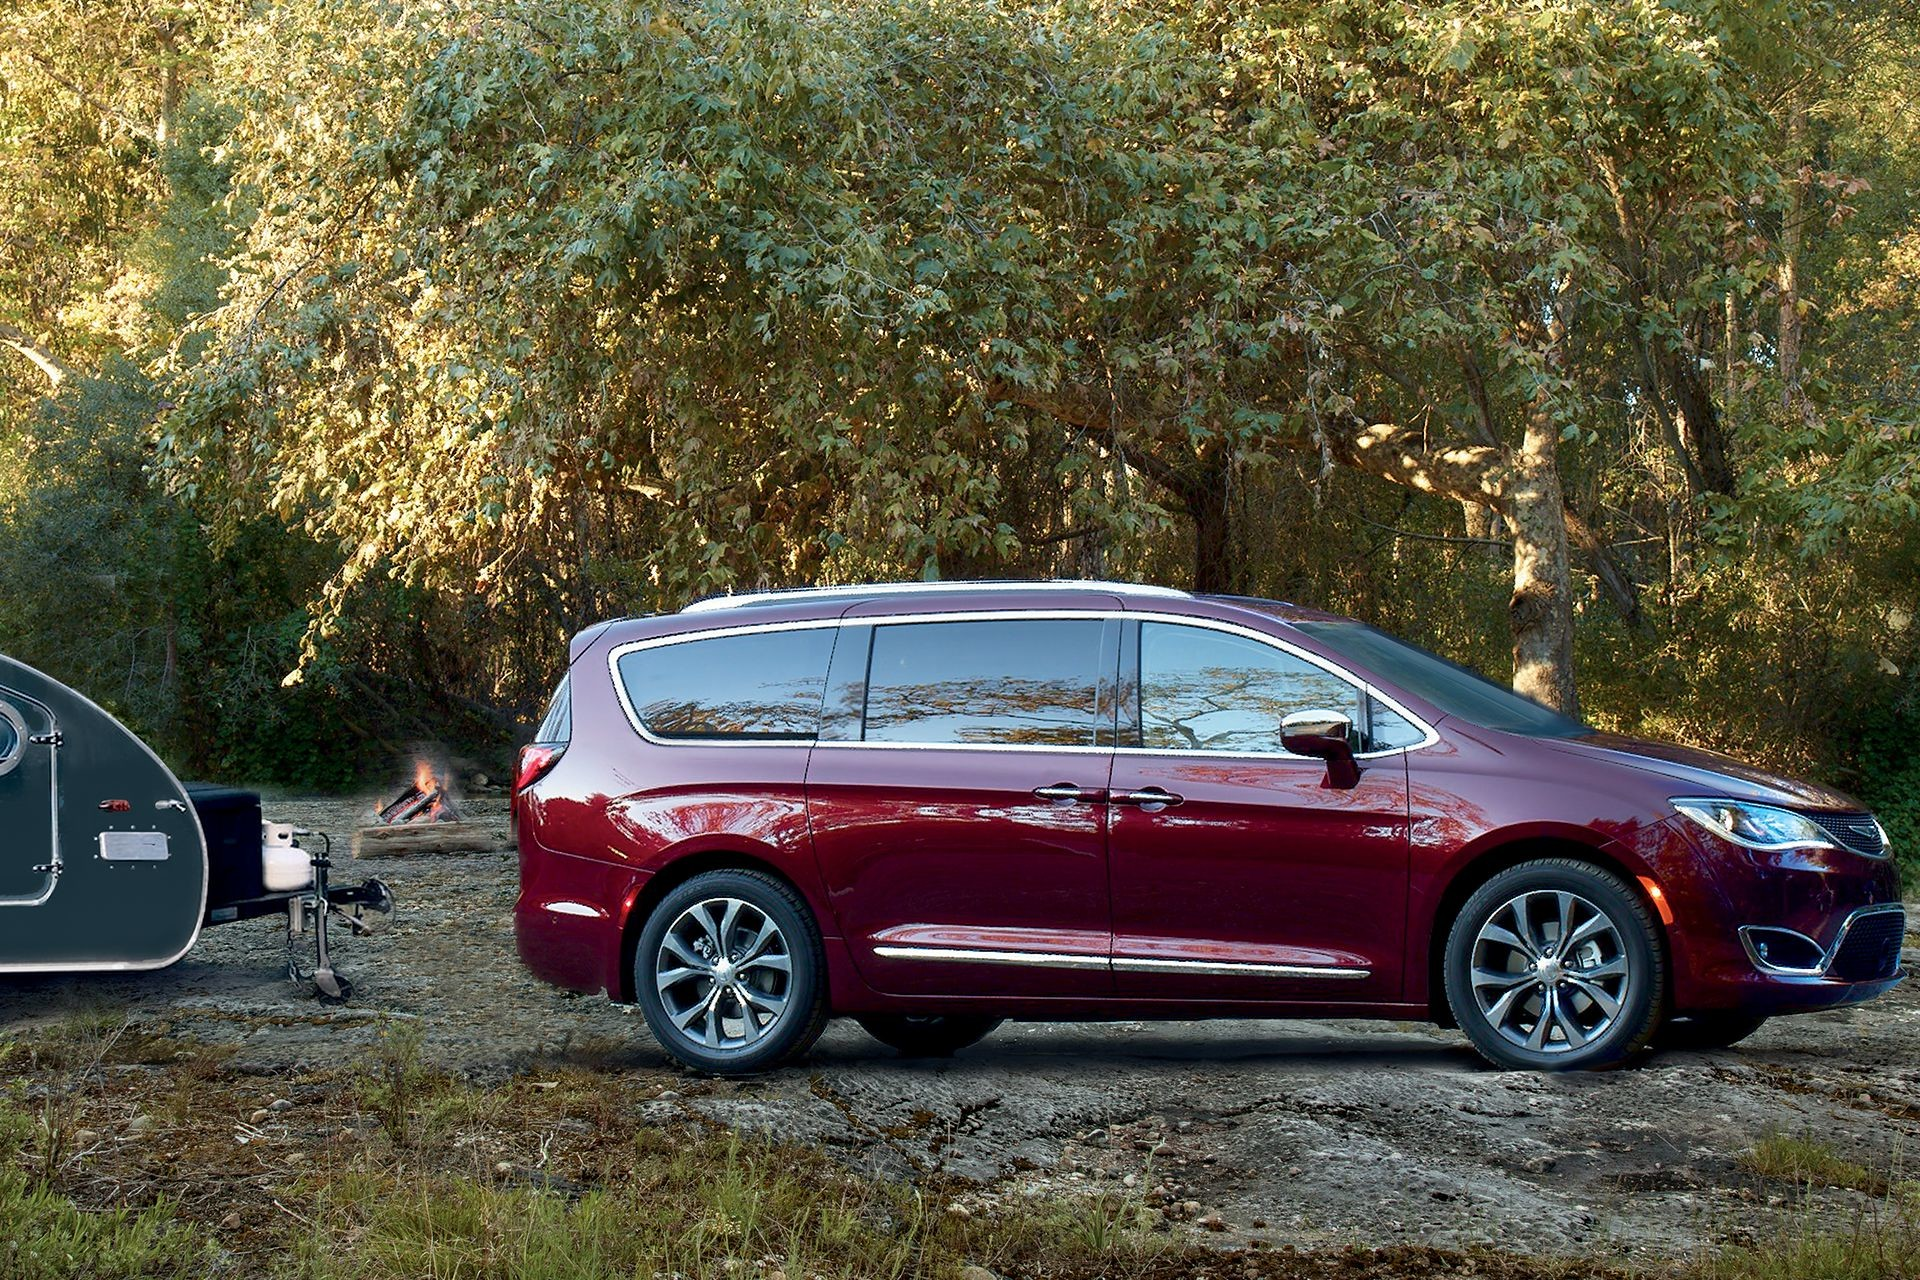 2018 Chrysler Pacifica Exterior Camping Lifestyle